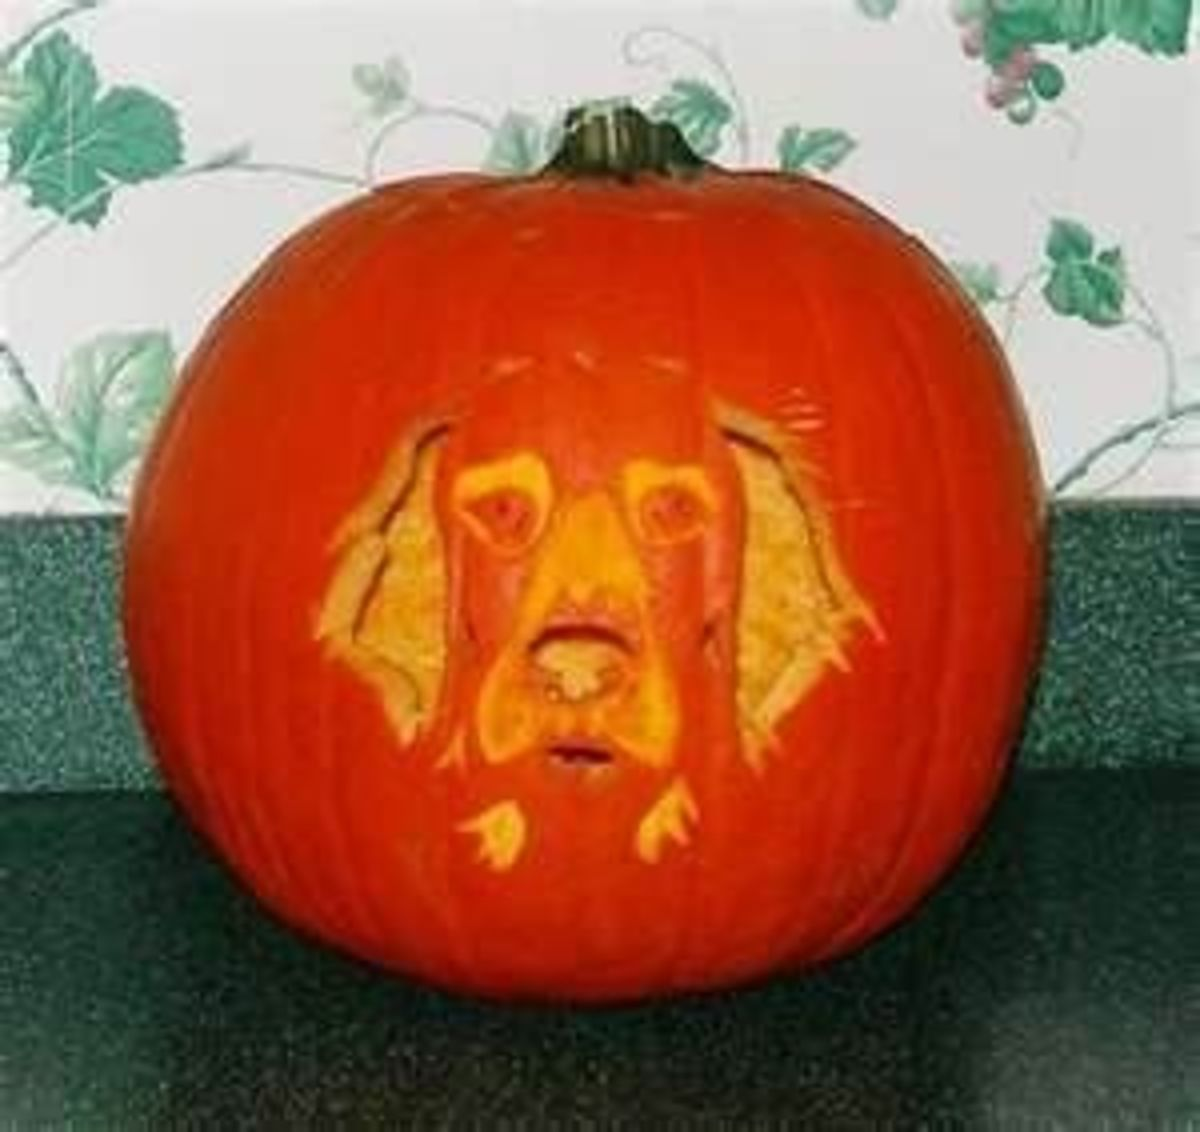 Dog portrait jack-o-lanterns are very popular. Photo from welcomepup.